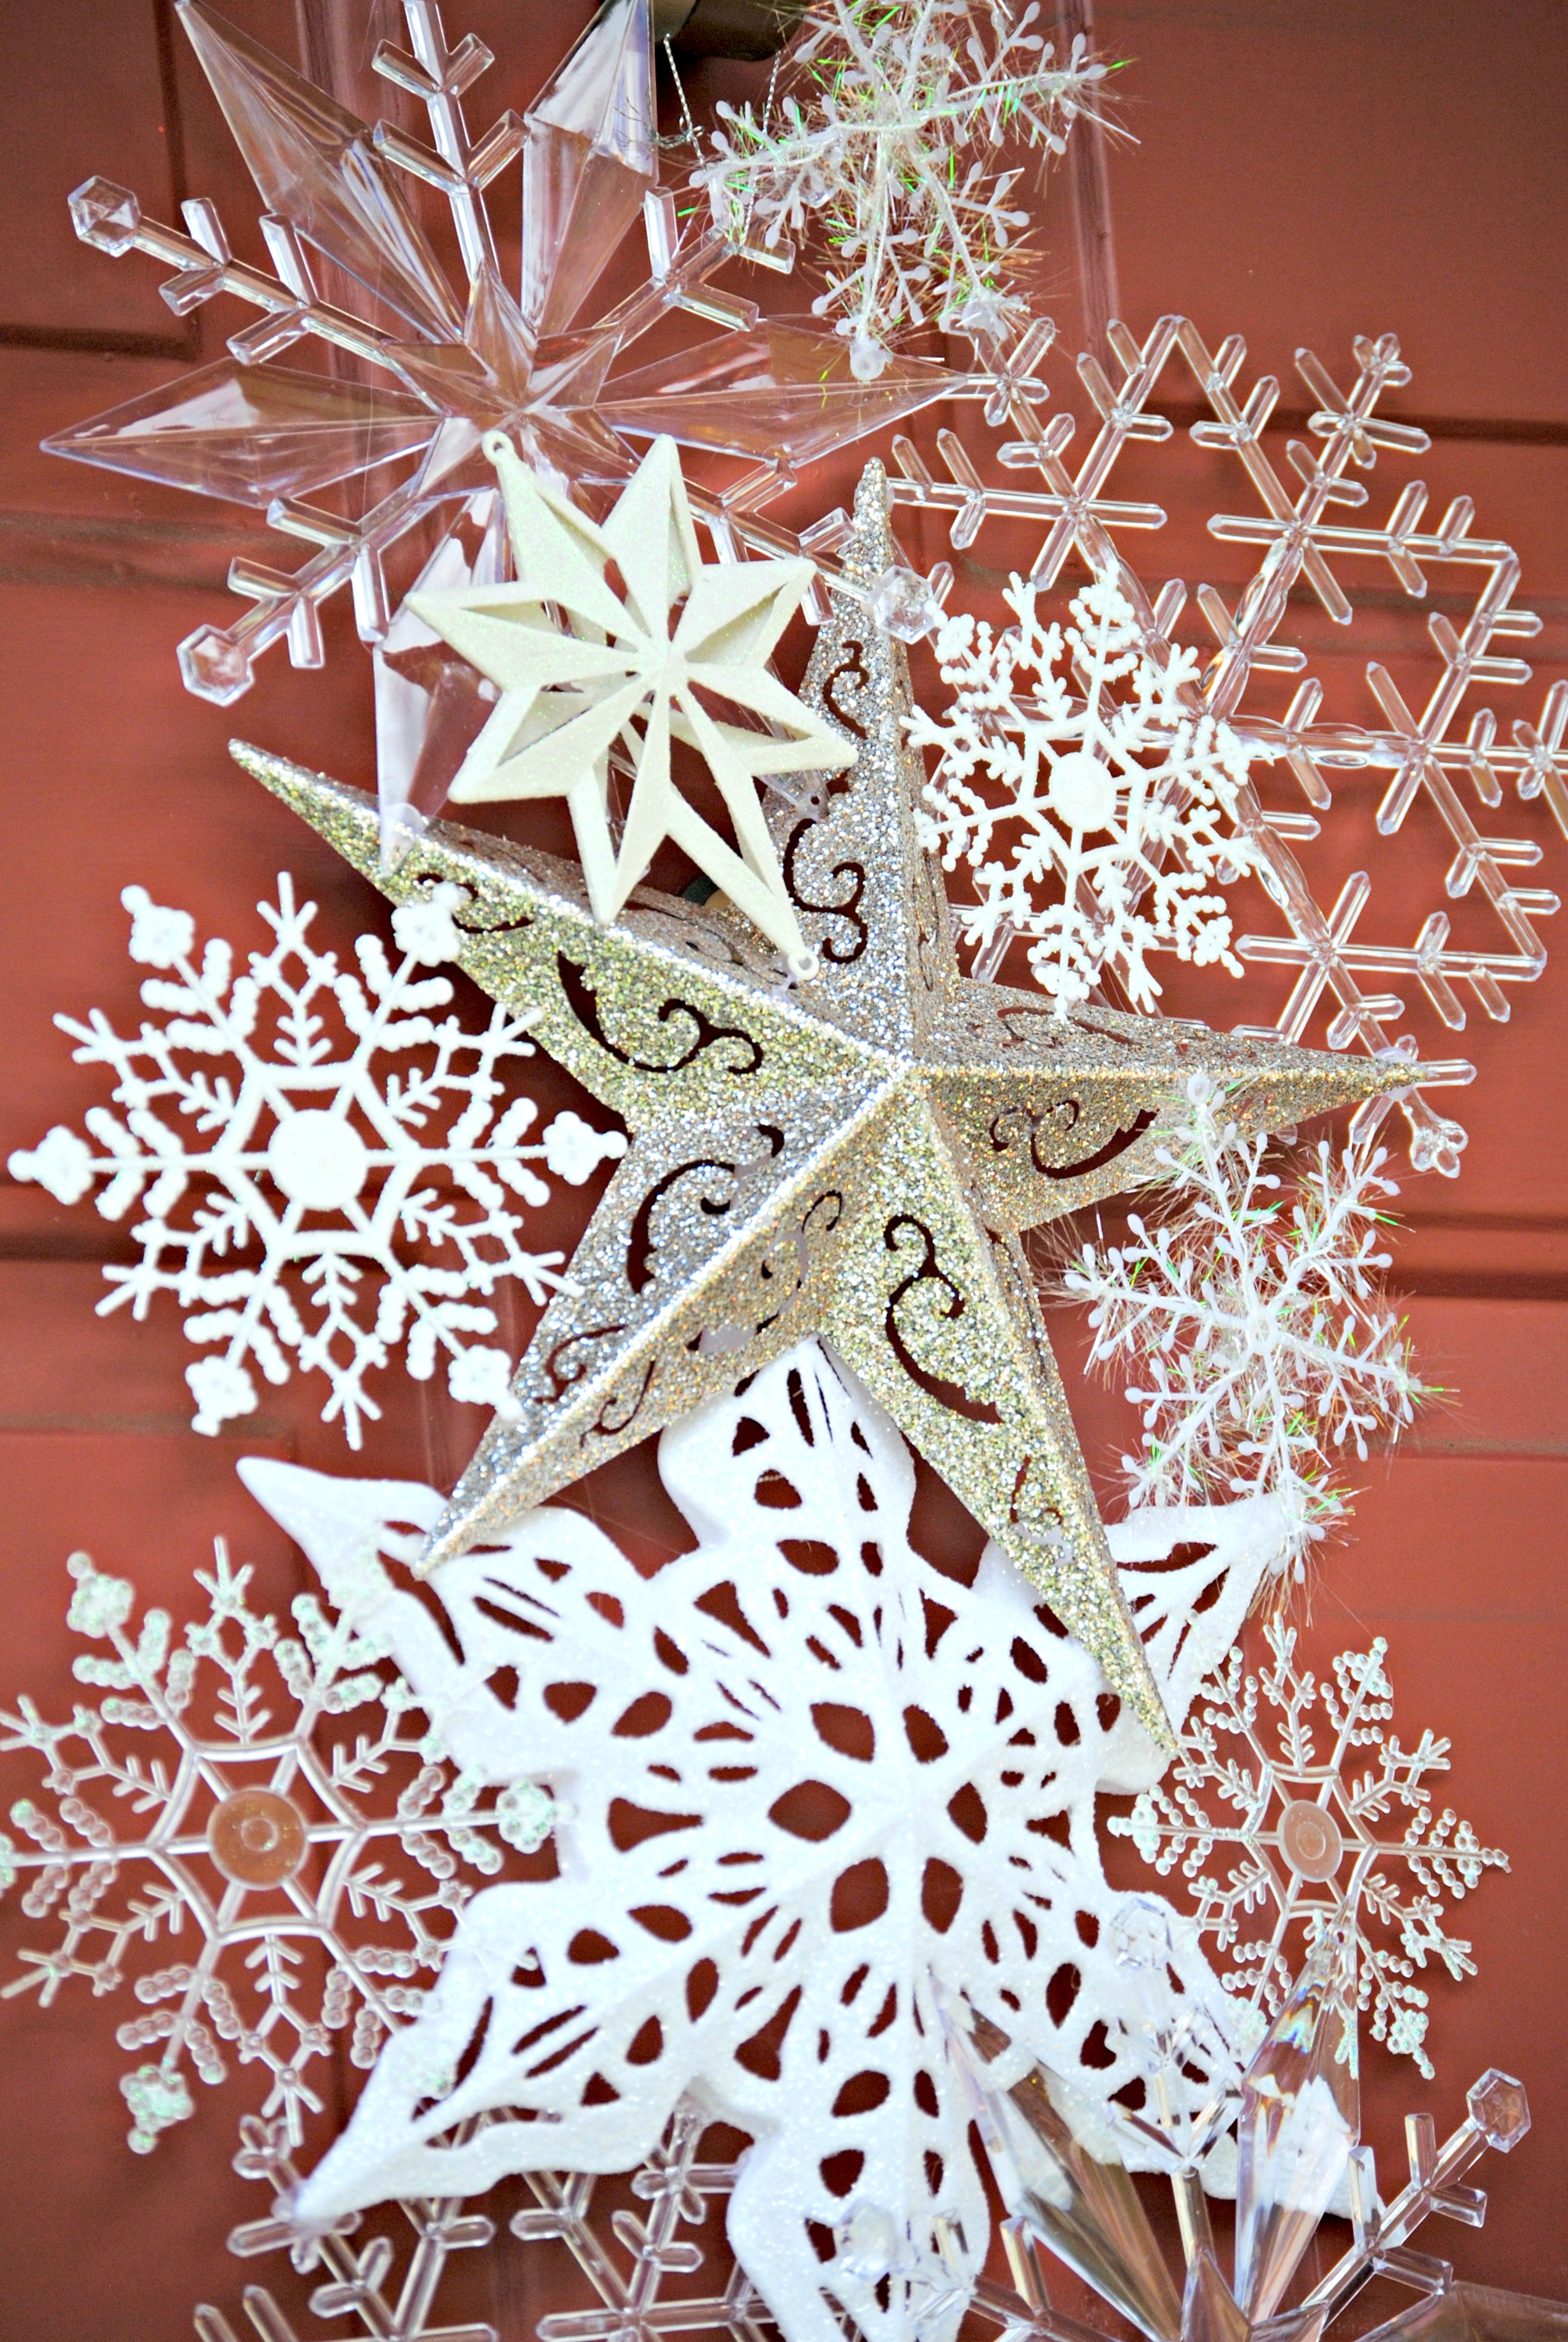 Dollar Store Snowflake Door Hanger Snowflake Door Hanger Dollar Store  Snowflake Door Hanger Diy Snowflake Christmas Card Holder With Christmas  Card Wreath ...